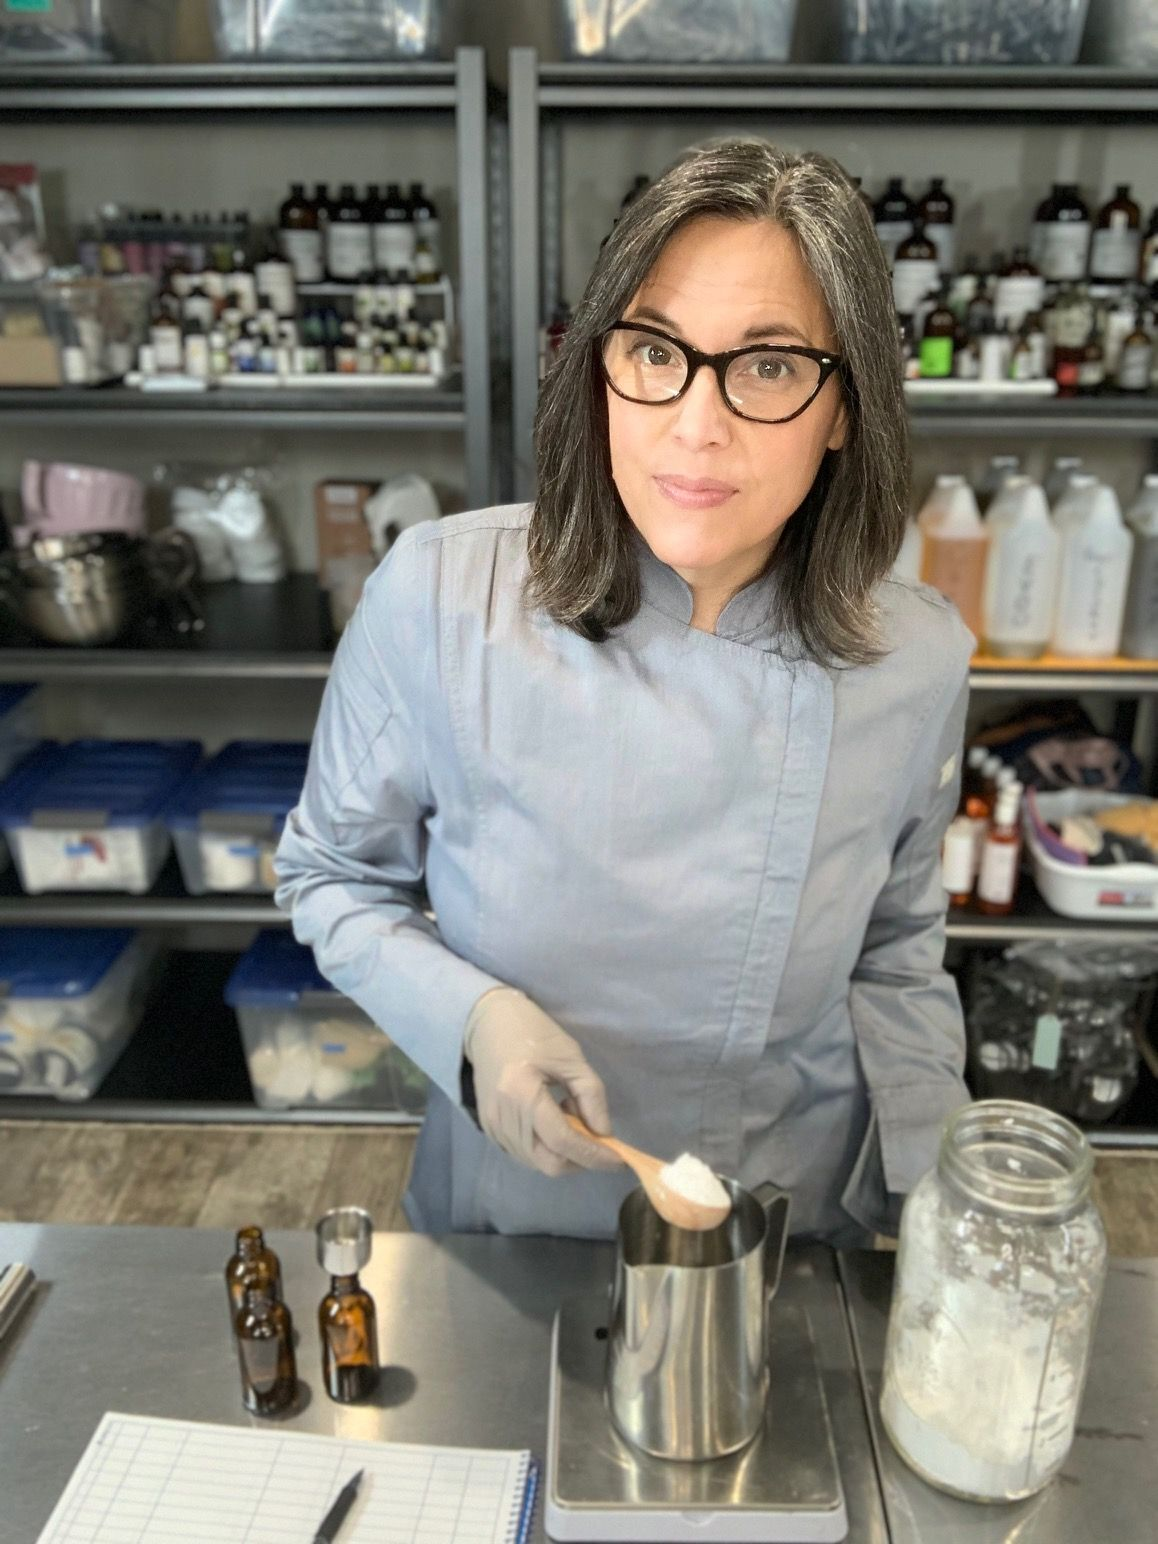 Leesburg-based Be Well Company sees major growth in clean beauty industry